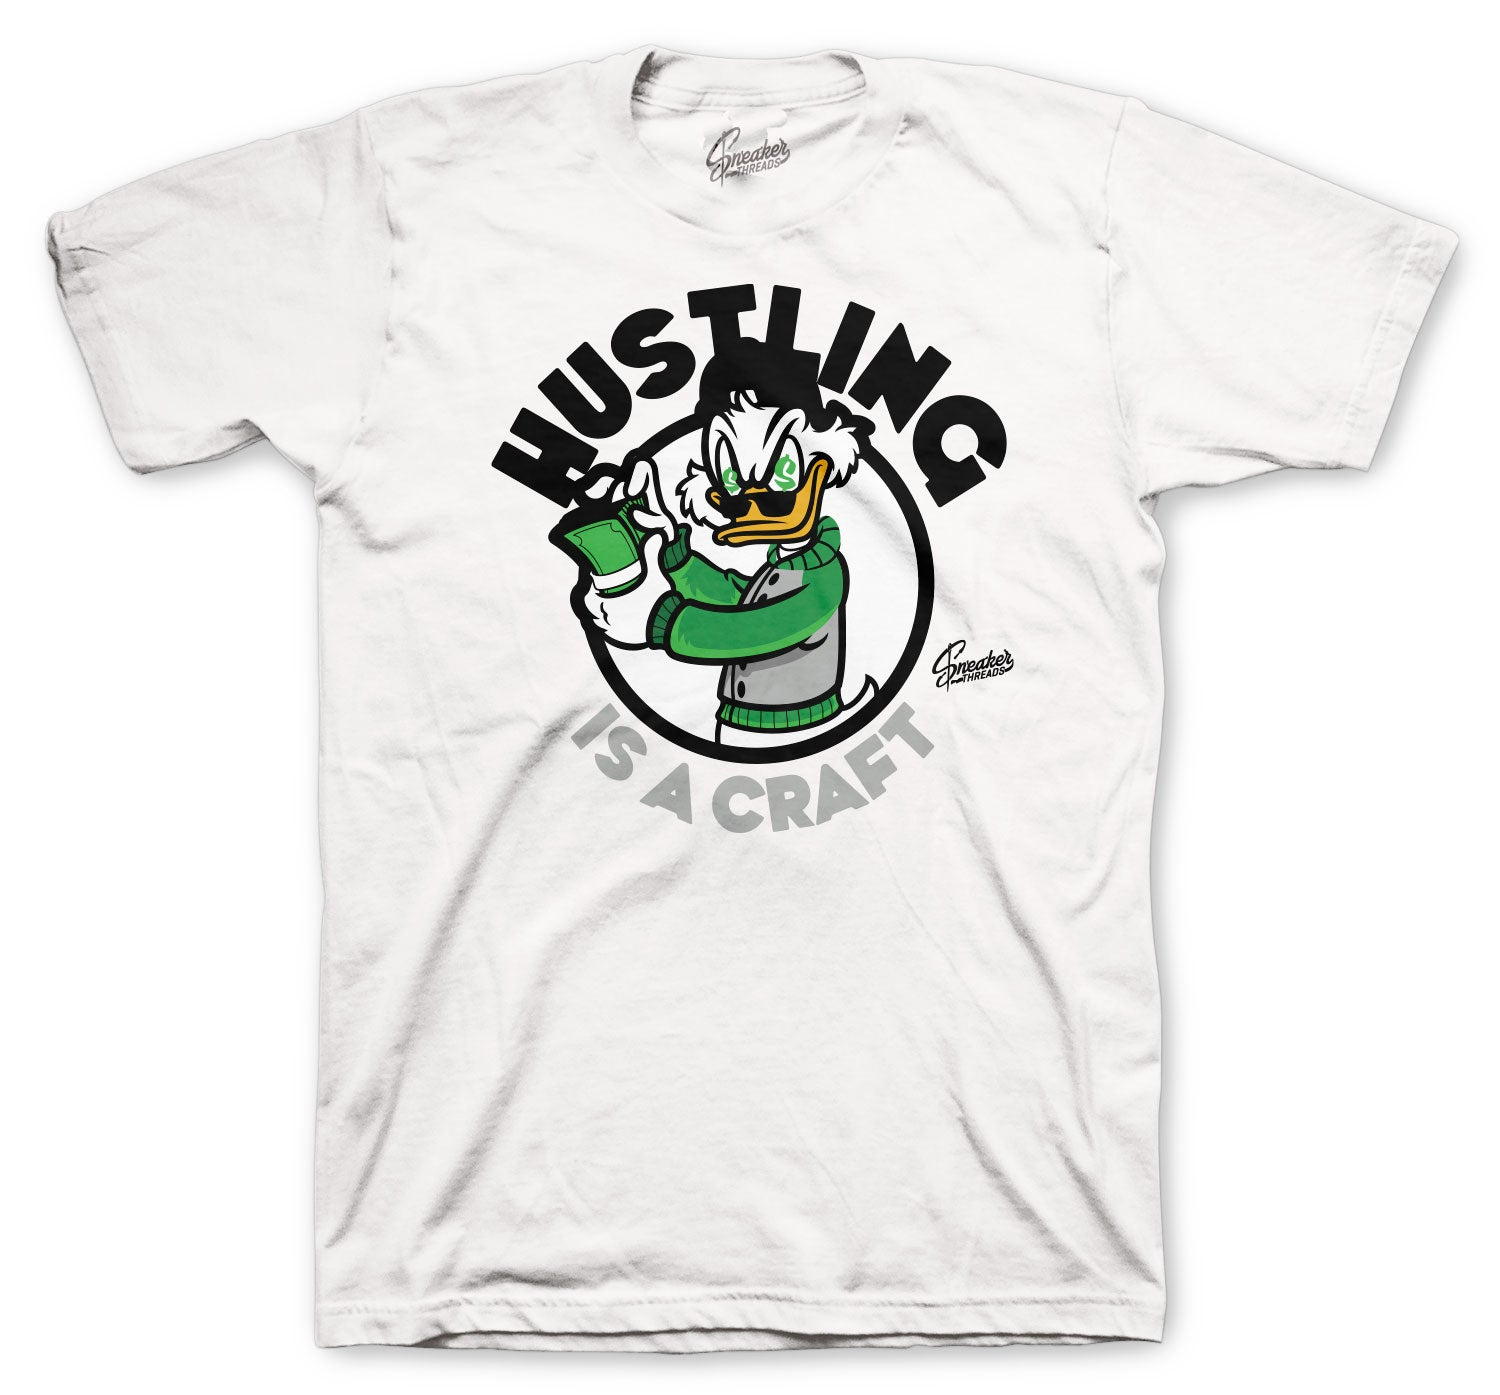 Jordan 13 Lucky Green Crafting Shirt